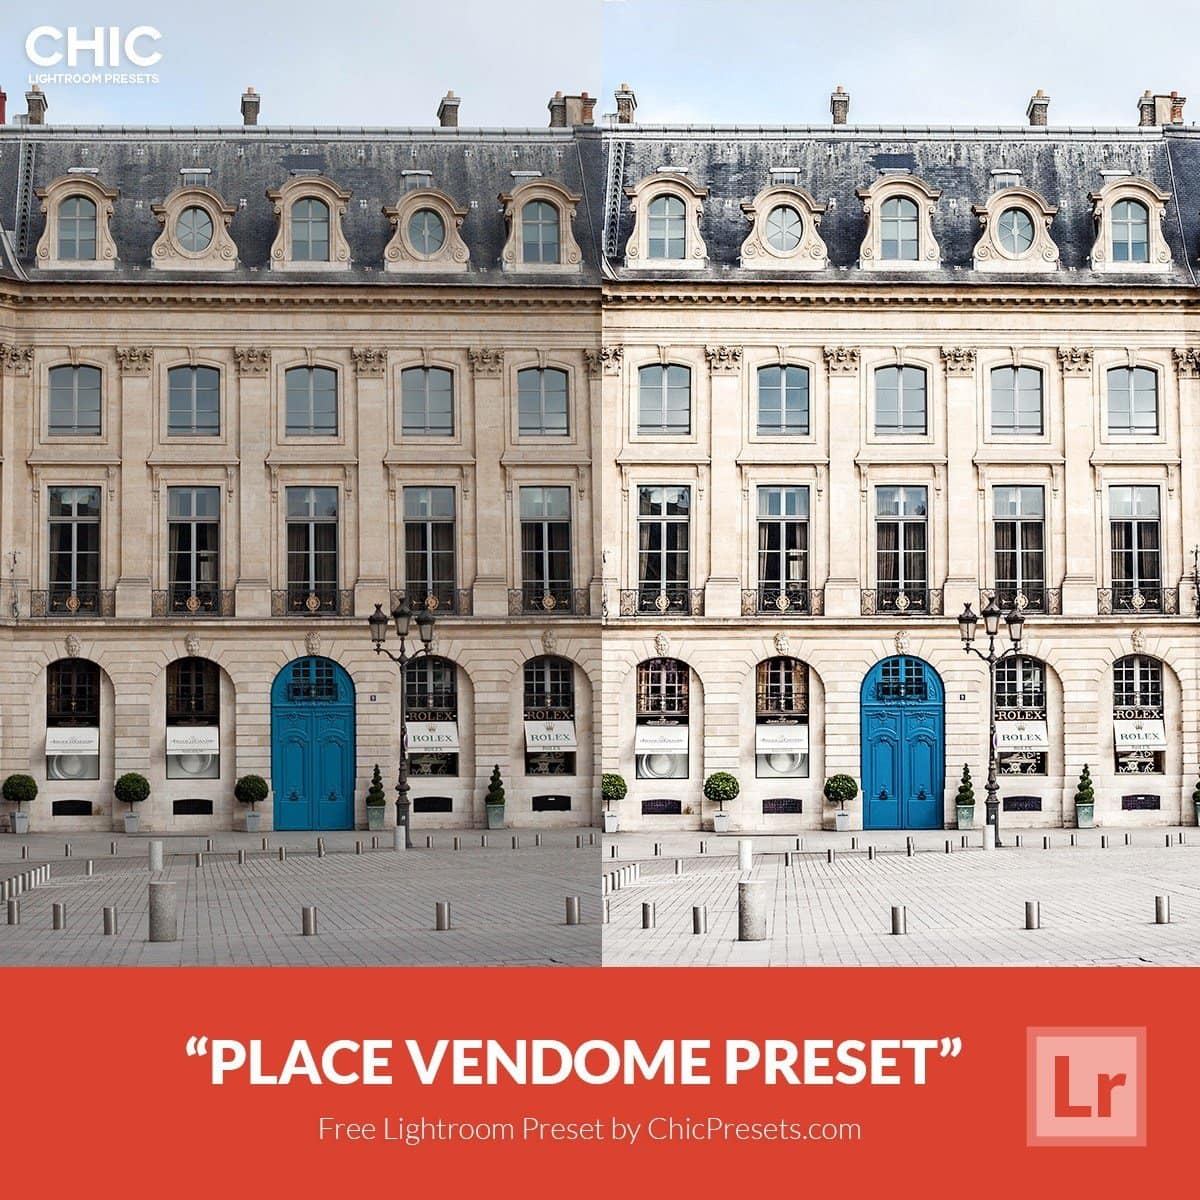 Free-Lightroom-Preset-Place-Vendome